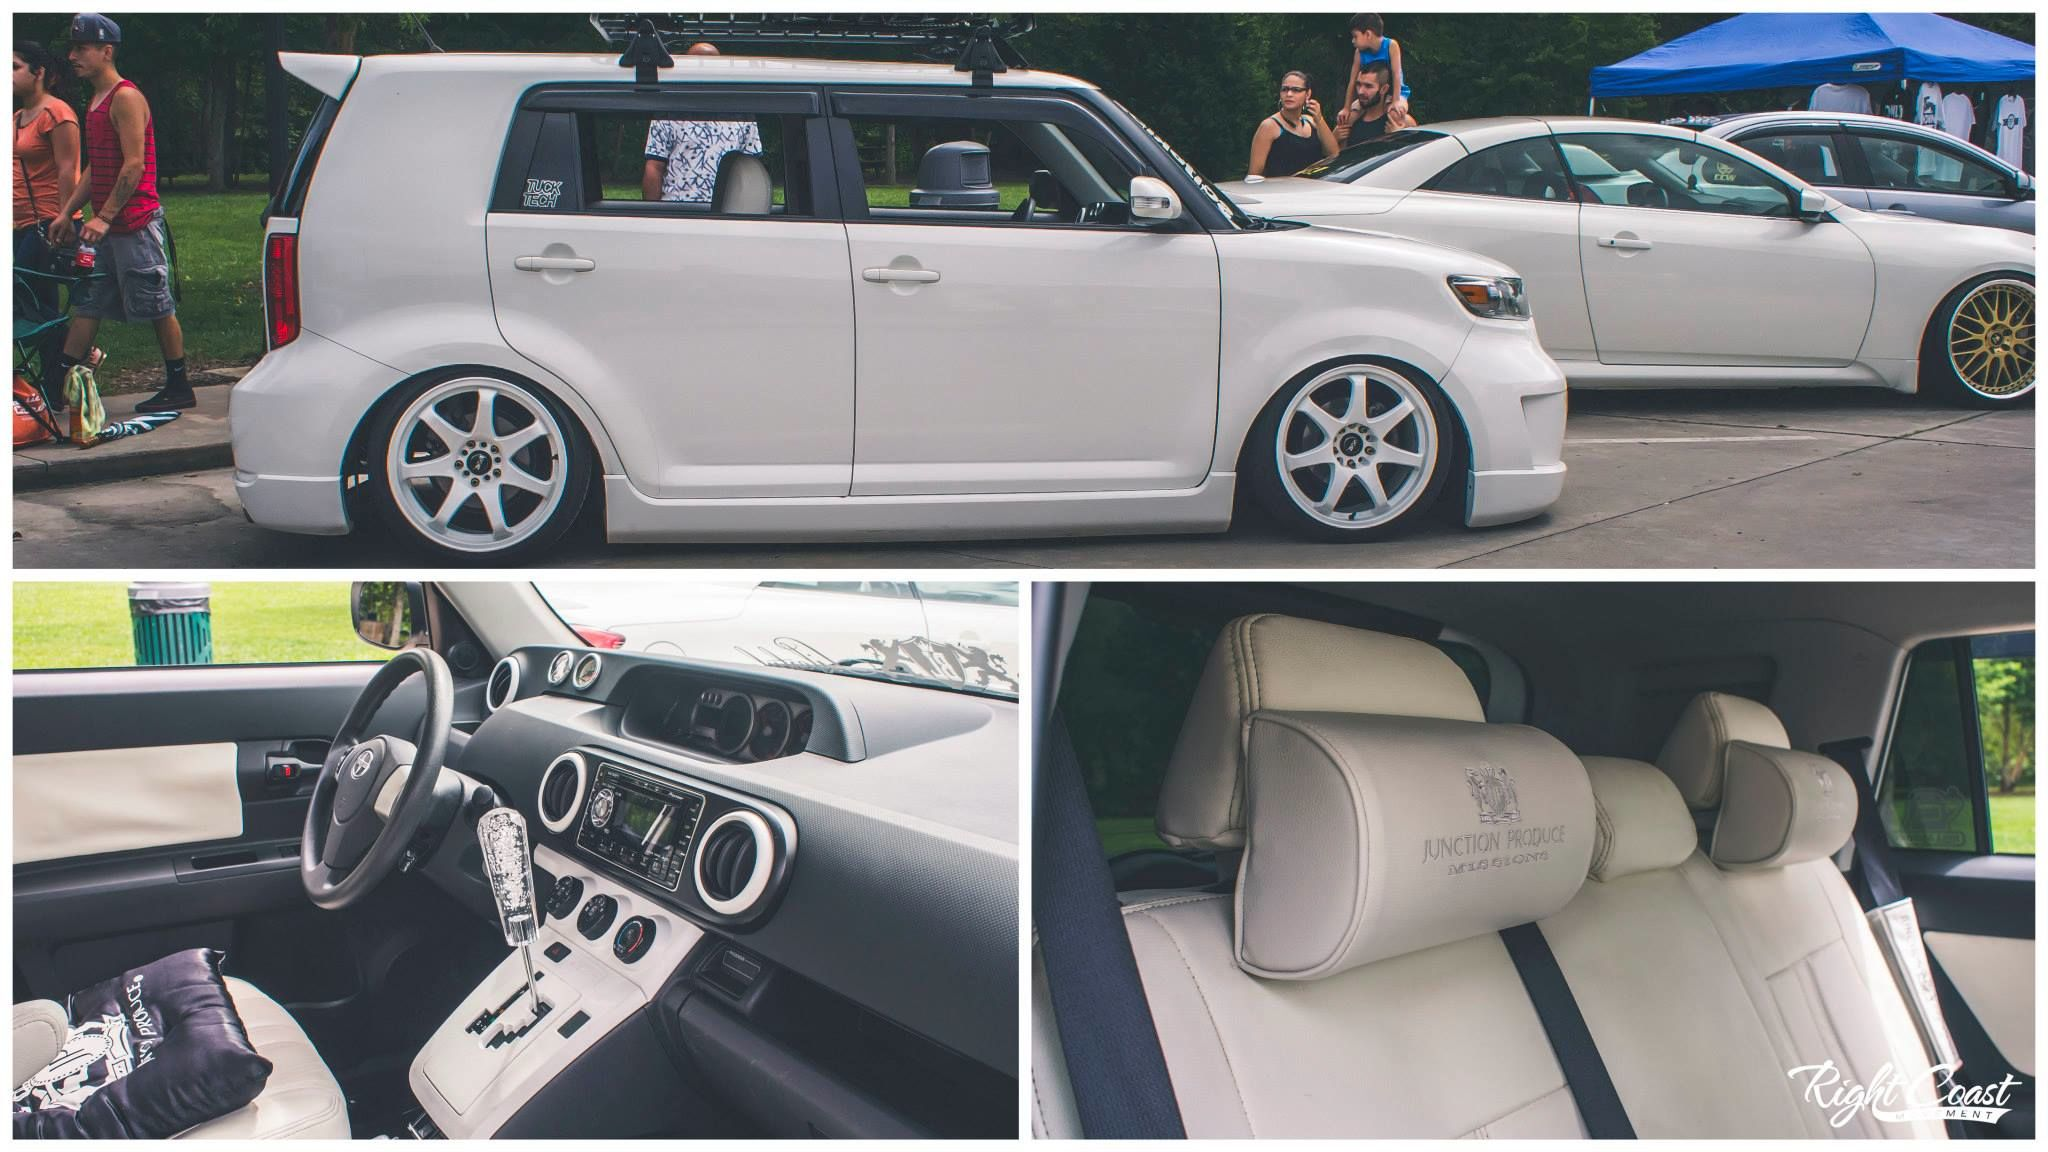 I Am So In Love With This The Great White Scion Xb Scion Xb 2008 Scion Xb Scion Xb Scion